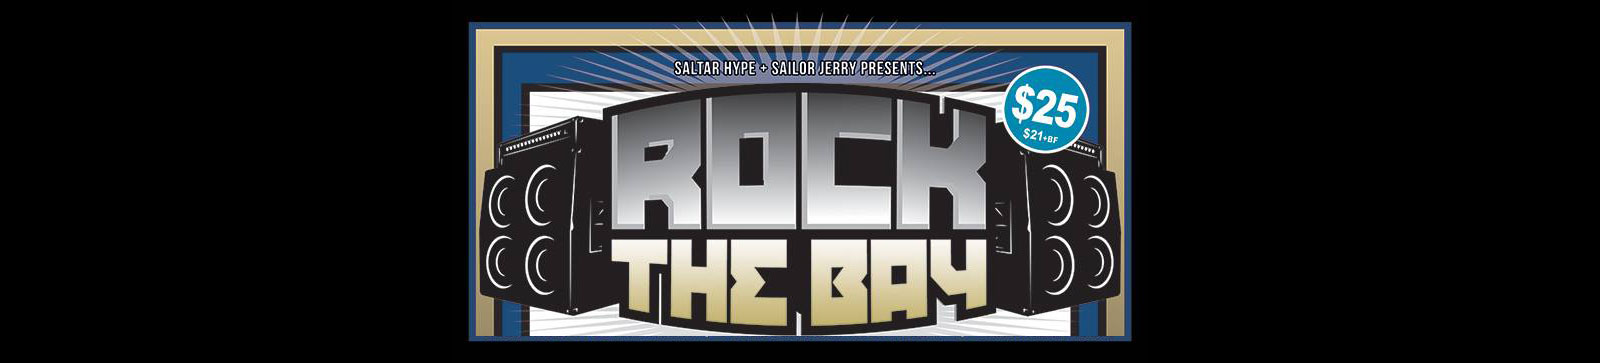 Rock The Bay 2015